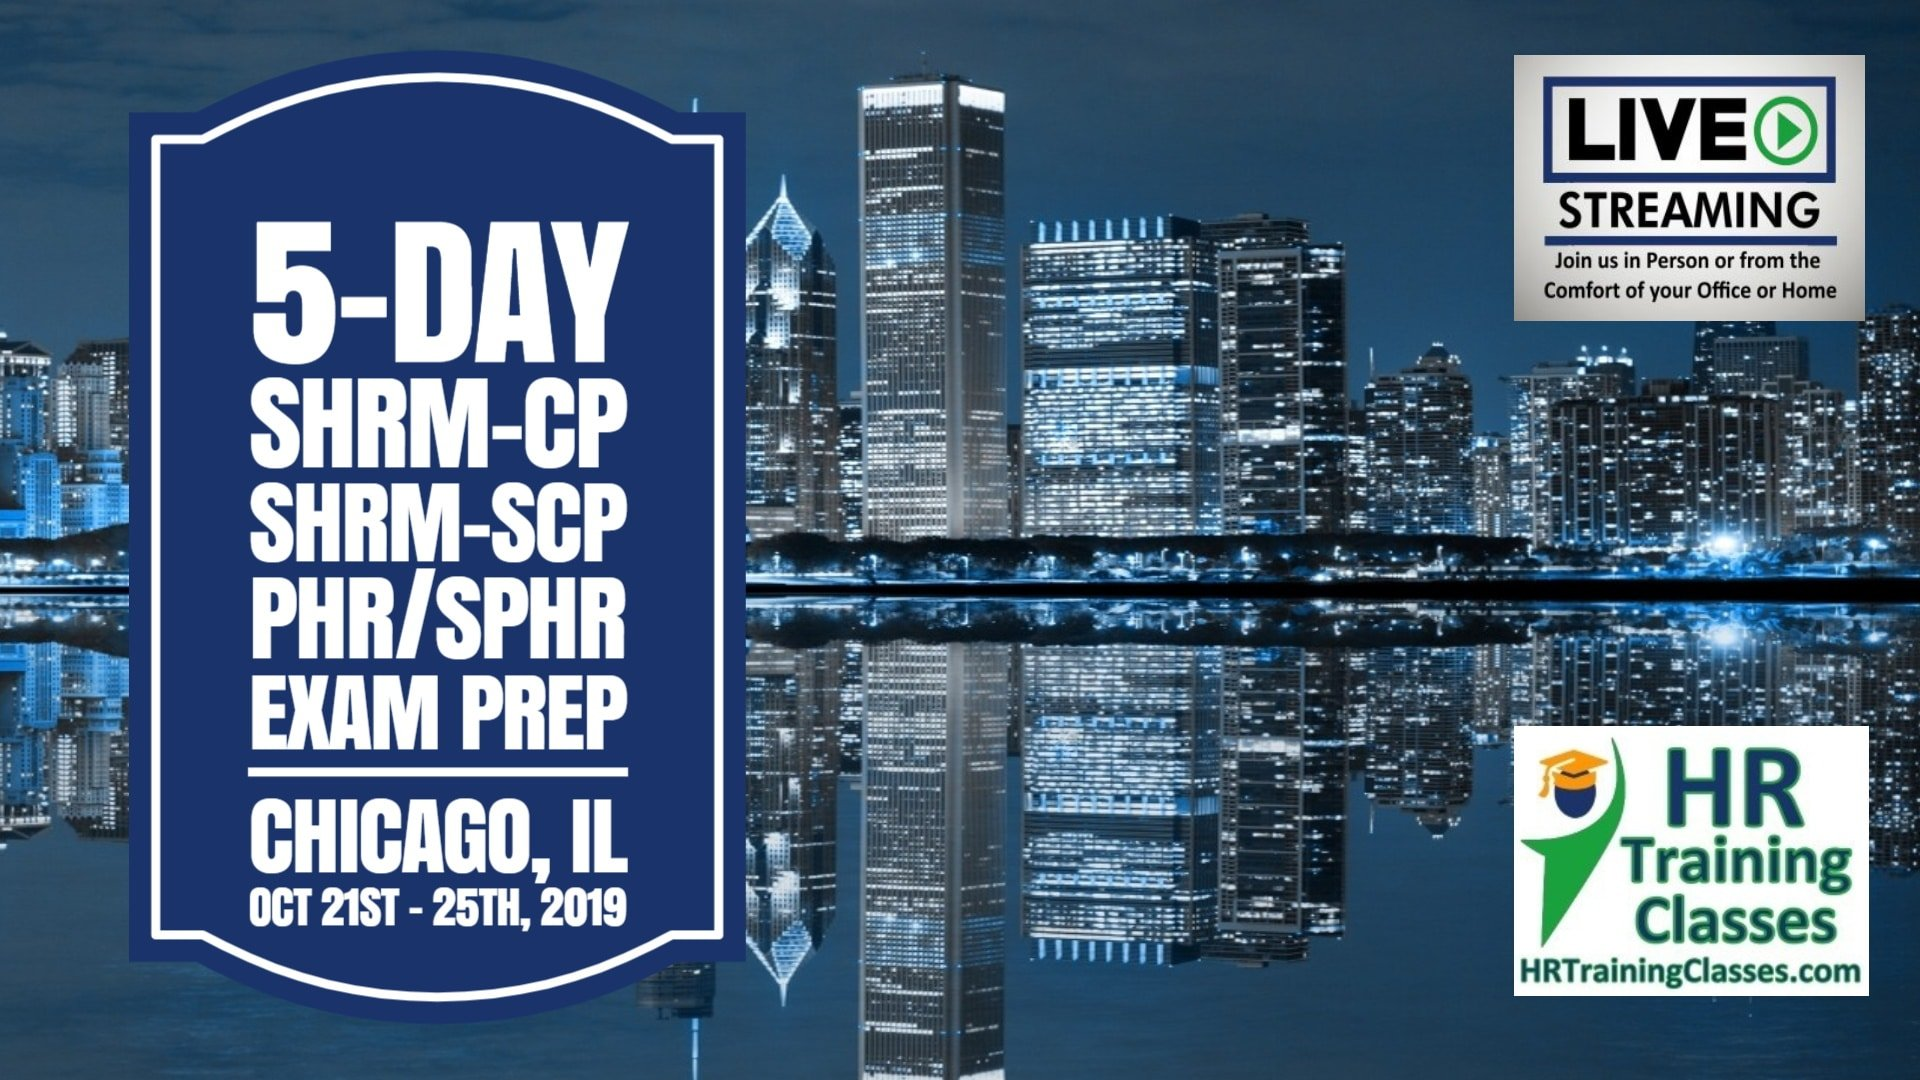 5-Day PHR, SPHR, SHRM-CP and SHRM-SCP Exam Prep Boot Camp in Chicago, IL or via Interactive Live Stream Webinar Oct 21 - 25, 2019 led by Elga Lejarza-Penn